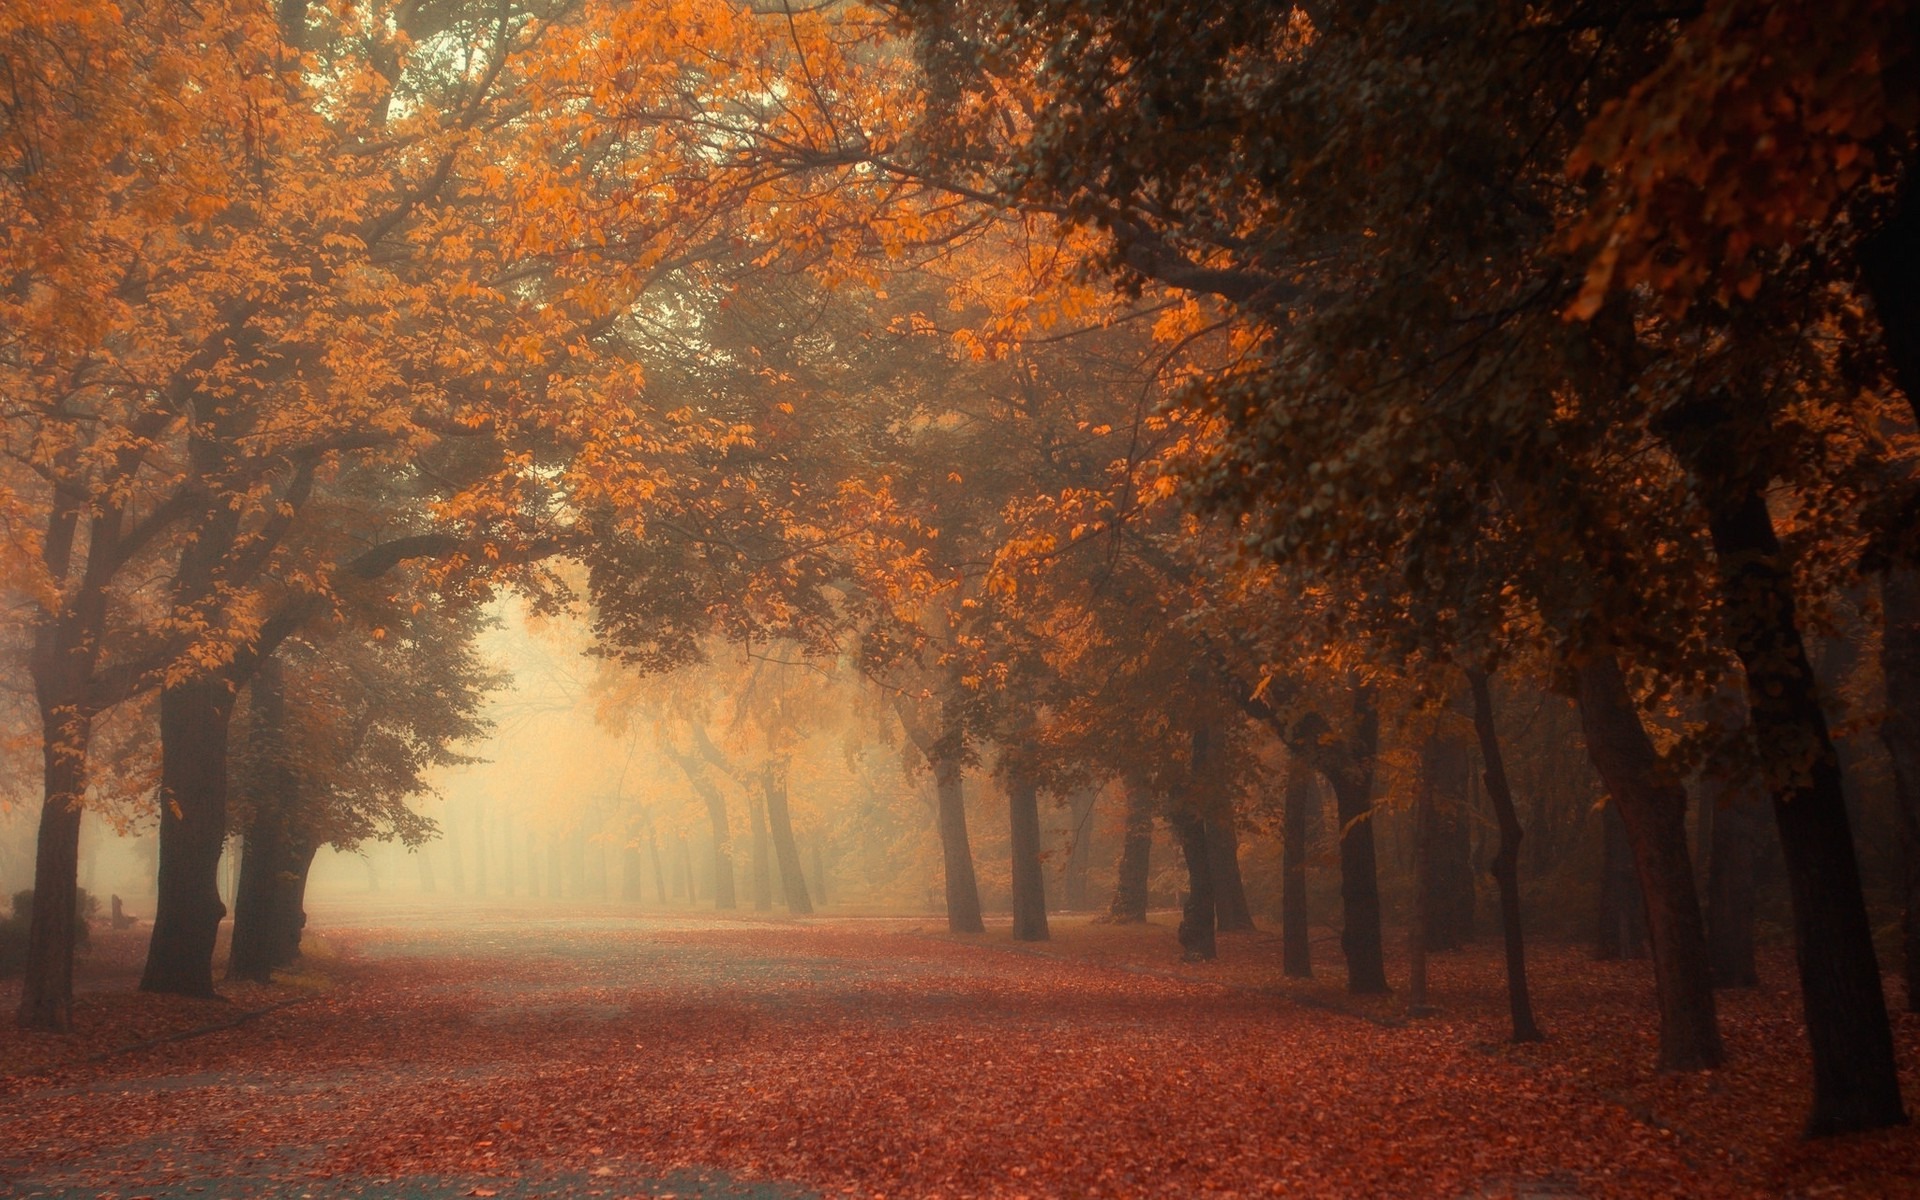 Desktop Wallpaper Fall Leaves Nature Landscape Fall Mist Trees Morning Park Road